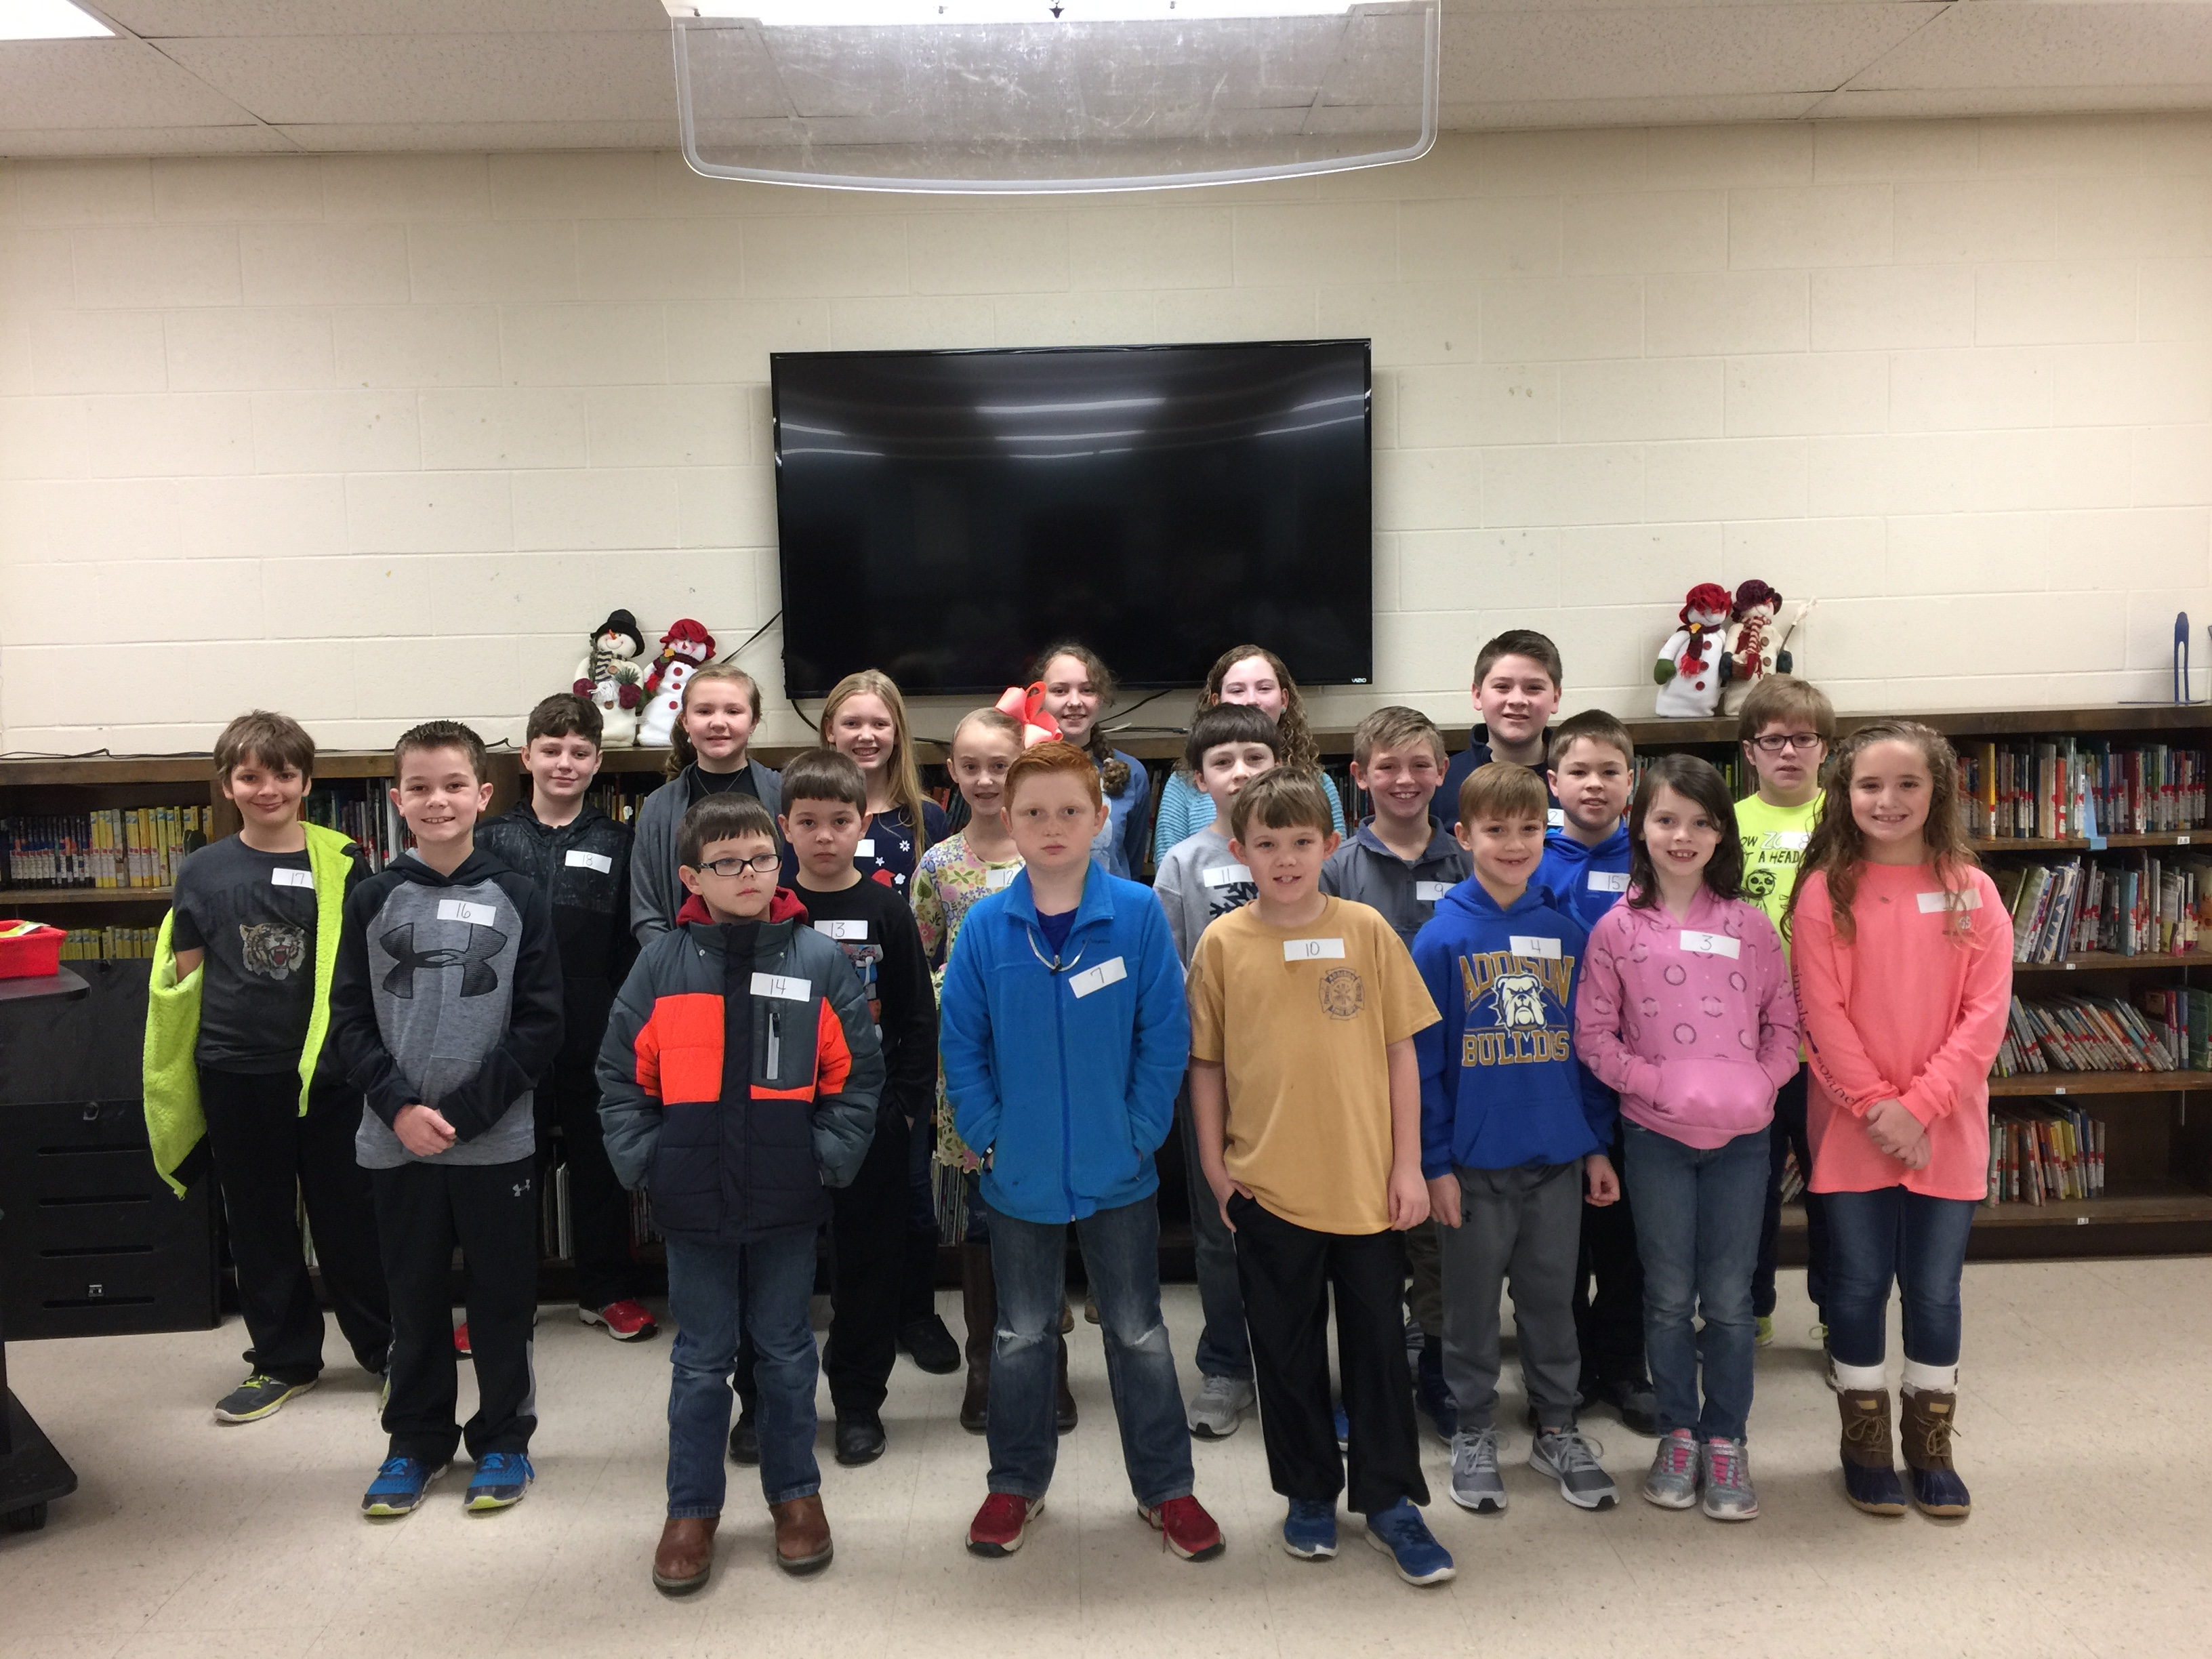 AES Spelling Bee 2018 Participants